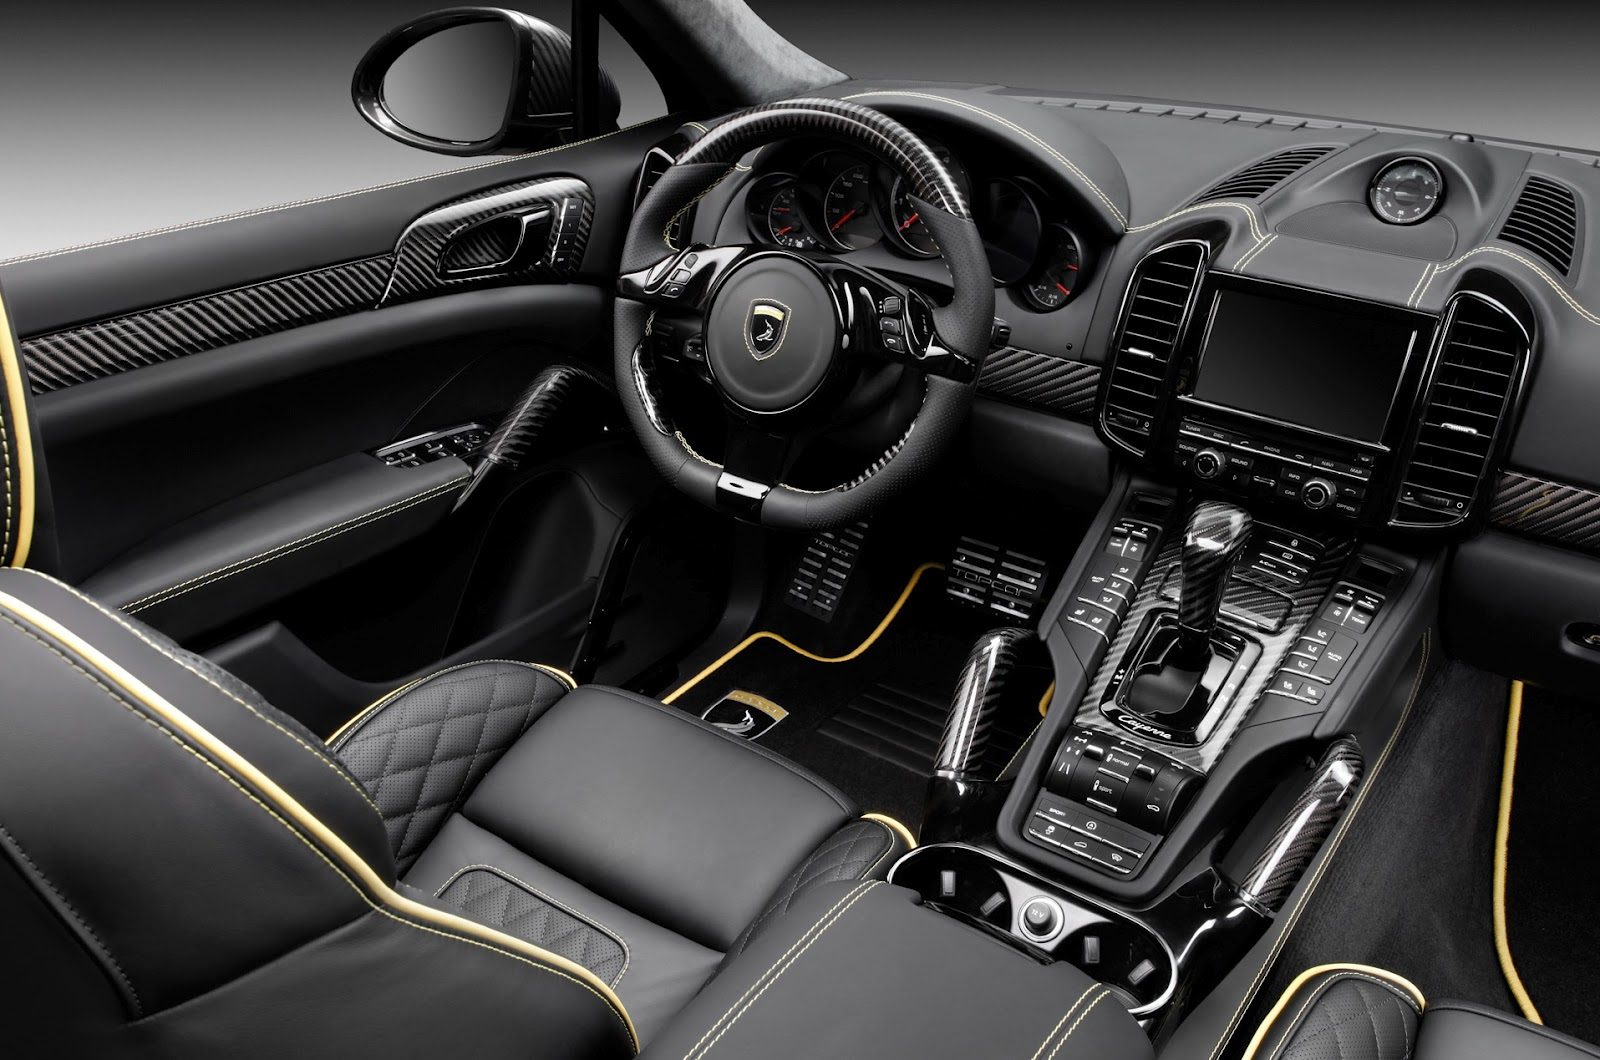 2012 topcar porsche cayenne vantage 2 carbon fiber design news hot car. Black Bedroom Furniture Sets. Home Design Ideas